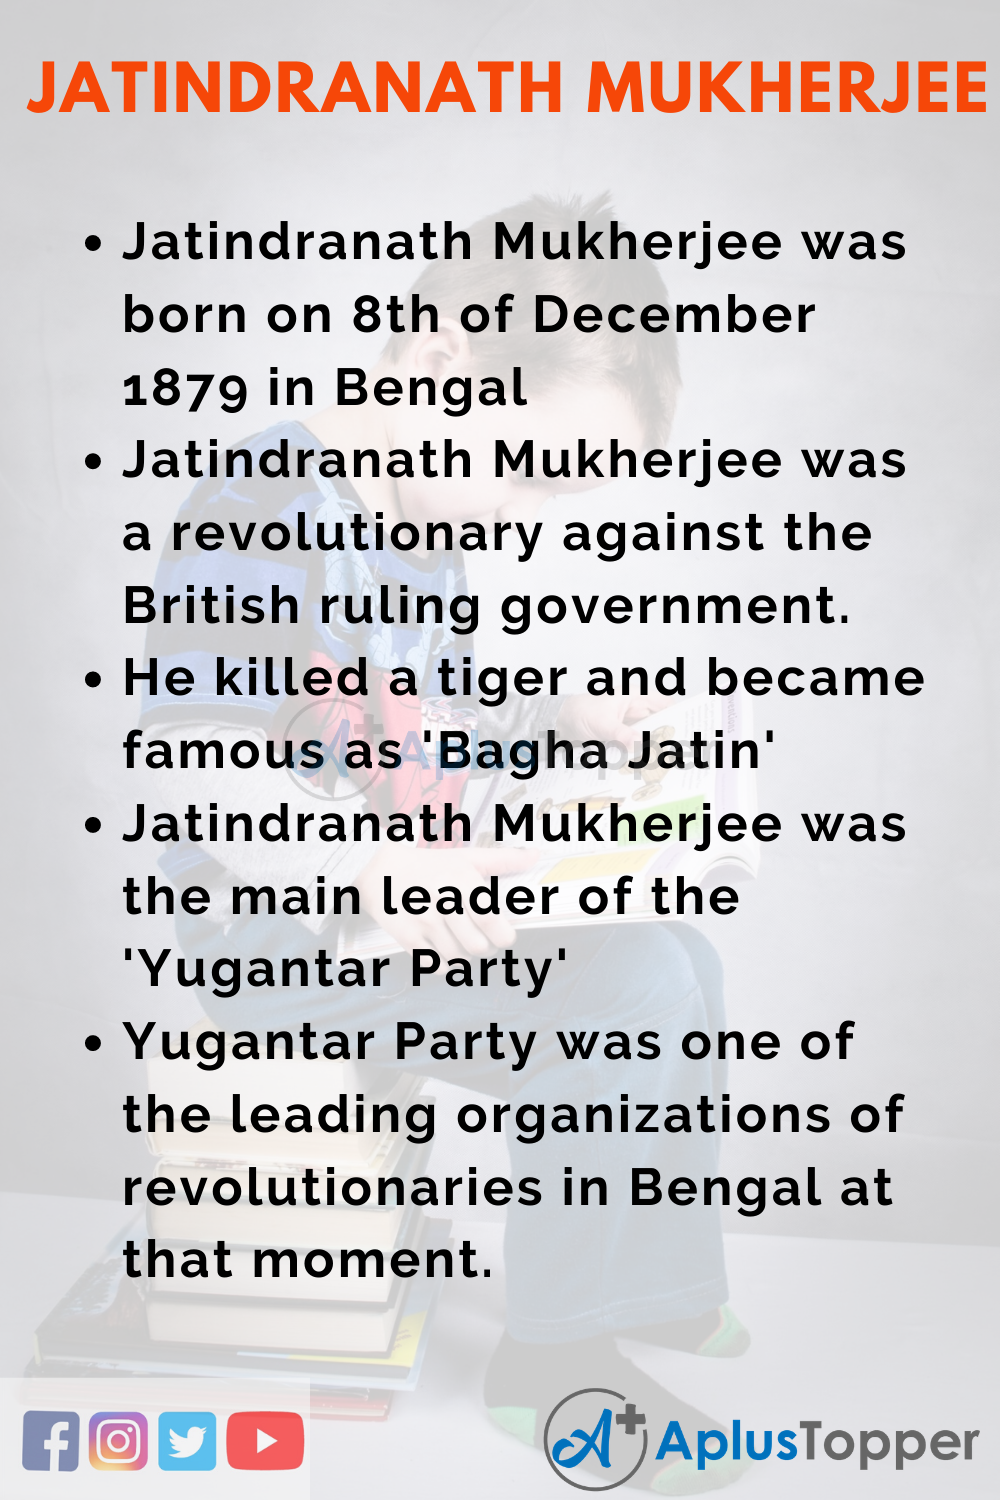 10 Lines on Jatindranath Mukherjee for Higher Class Students